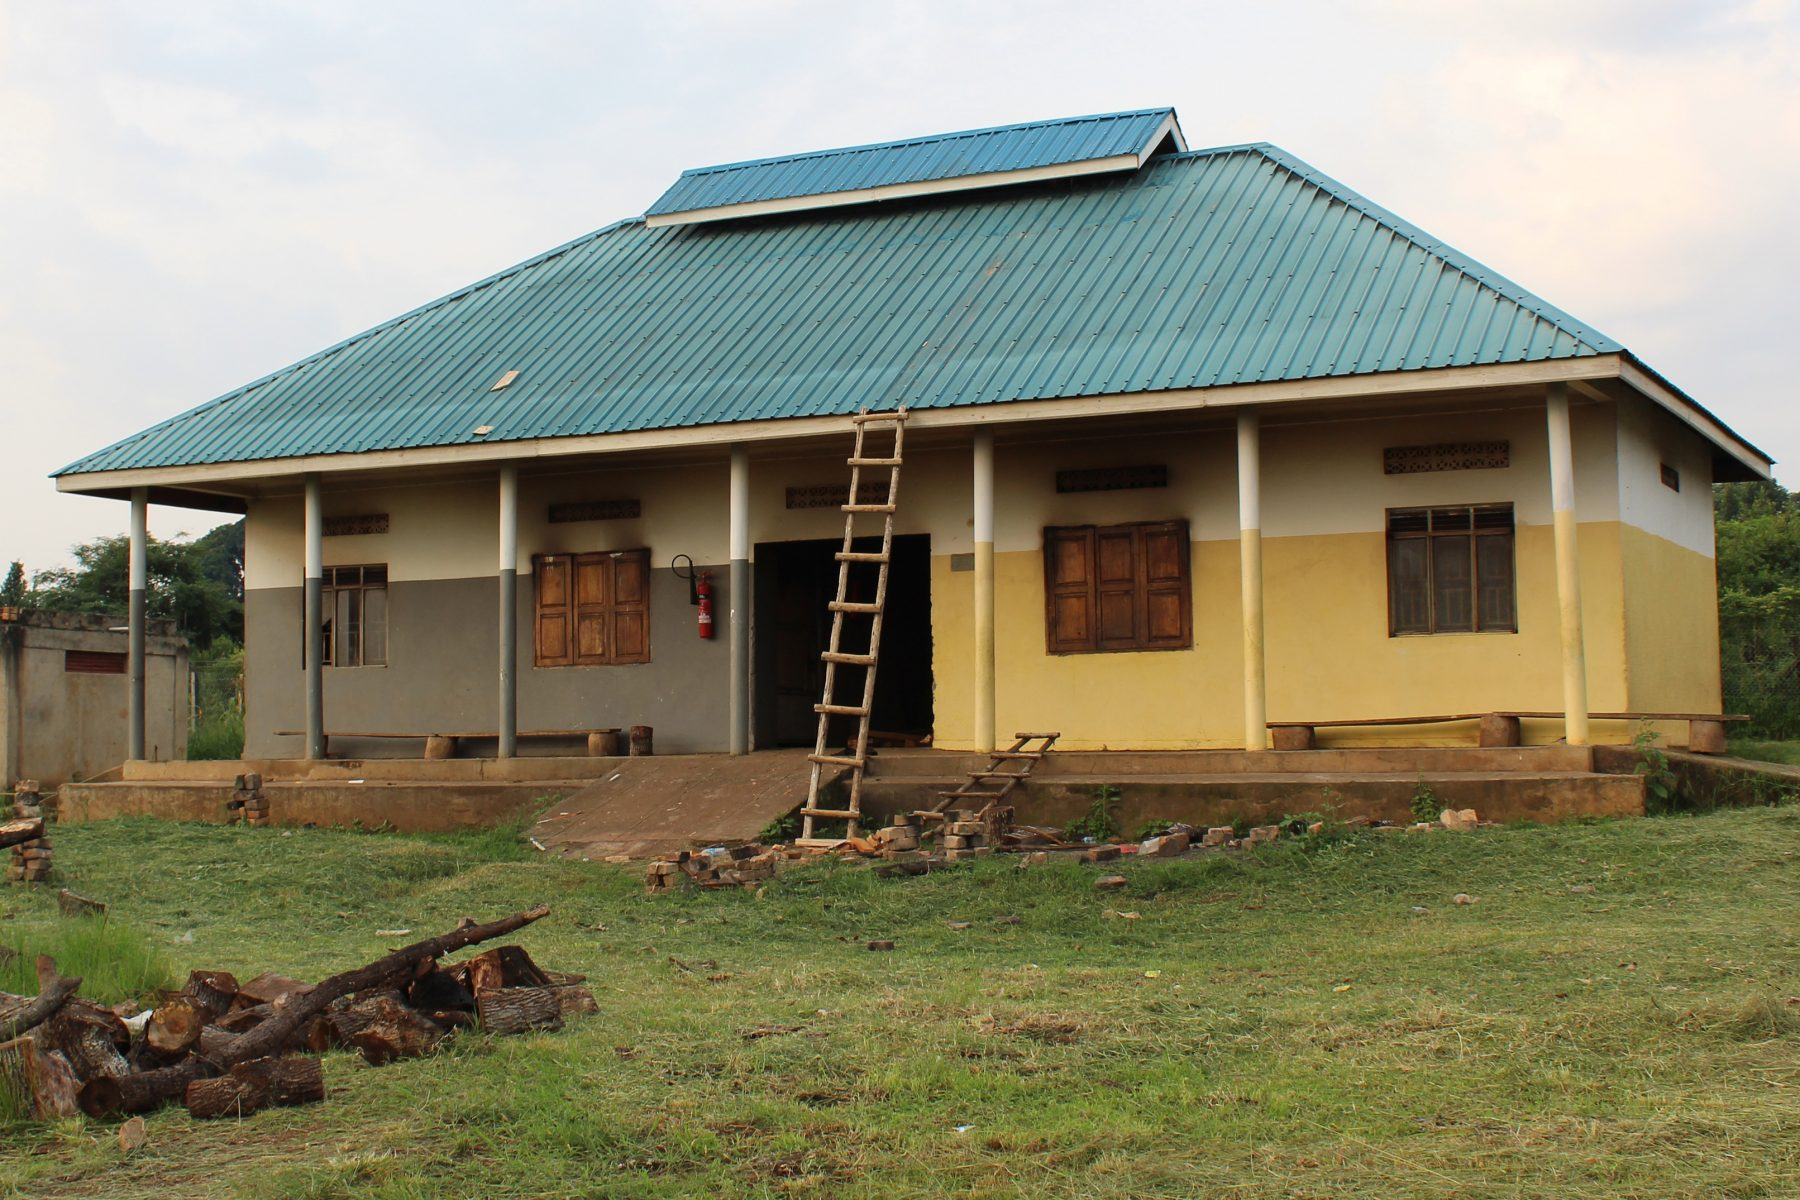 The School Kitchens Building with a New, Higher Roof To Accommodate New Chimneys.